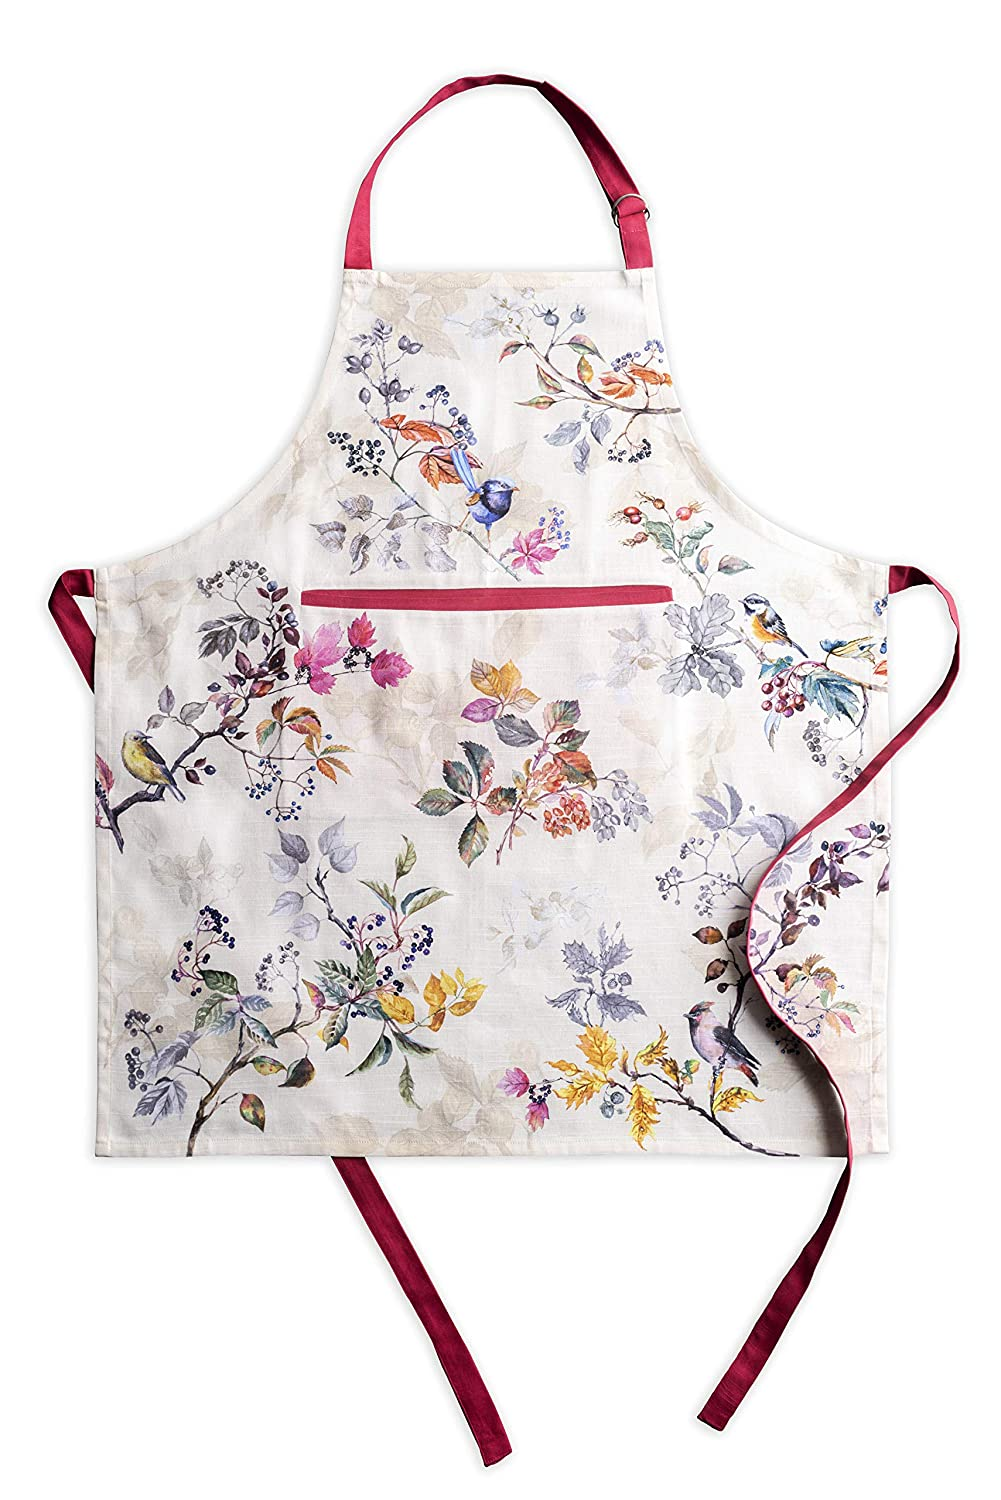 Maison d' Hermine Equinoxe 100% Cotton Beige Apron with an Adjustable Neck & Hidden Center Pocket 27.5 Inch by 31.5 Inch. Perfect for Thanksgiving and Christmas Aspero